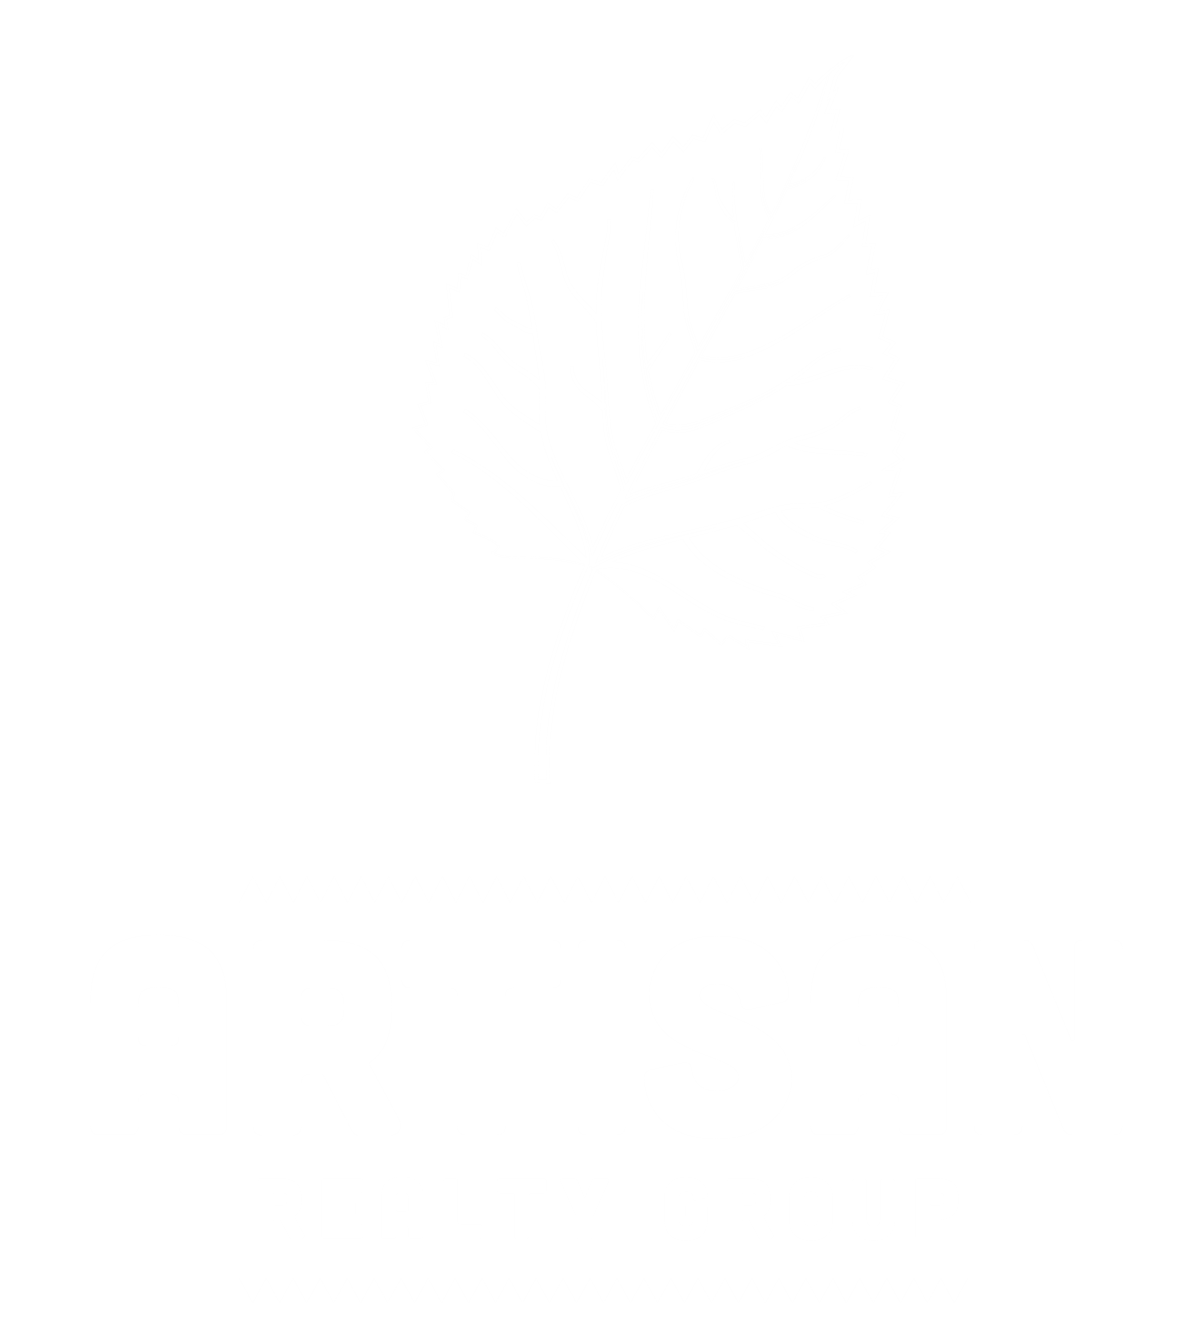 Artisan Realty Group LLC